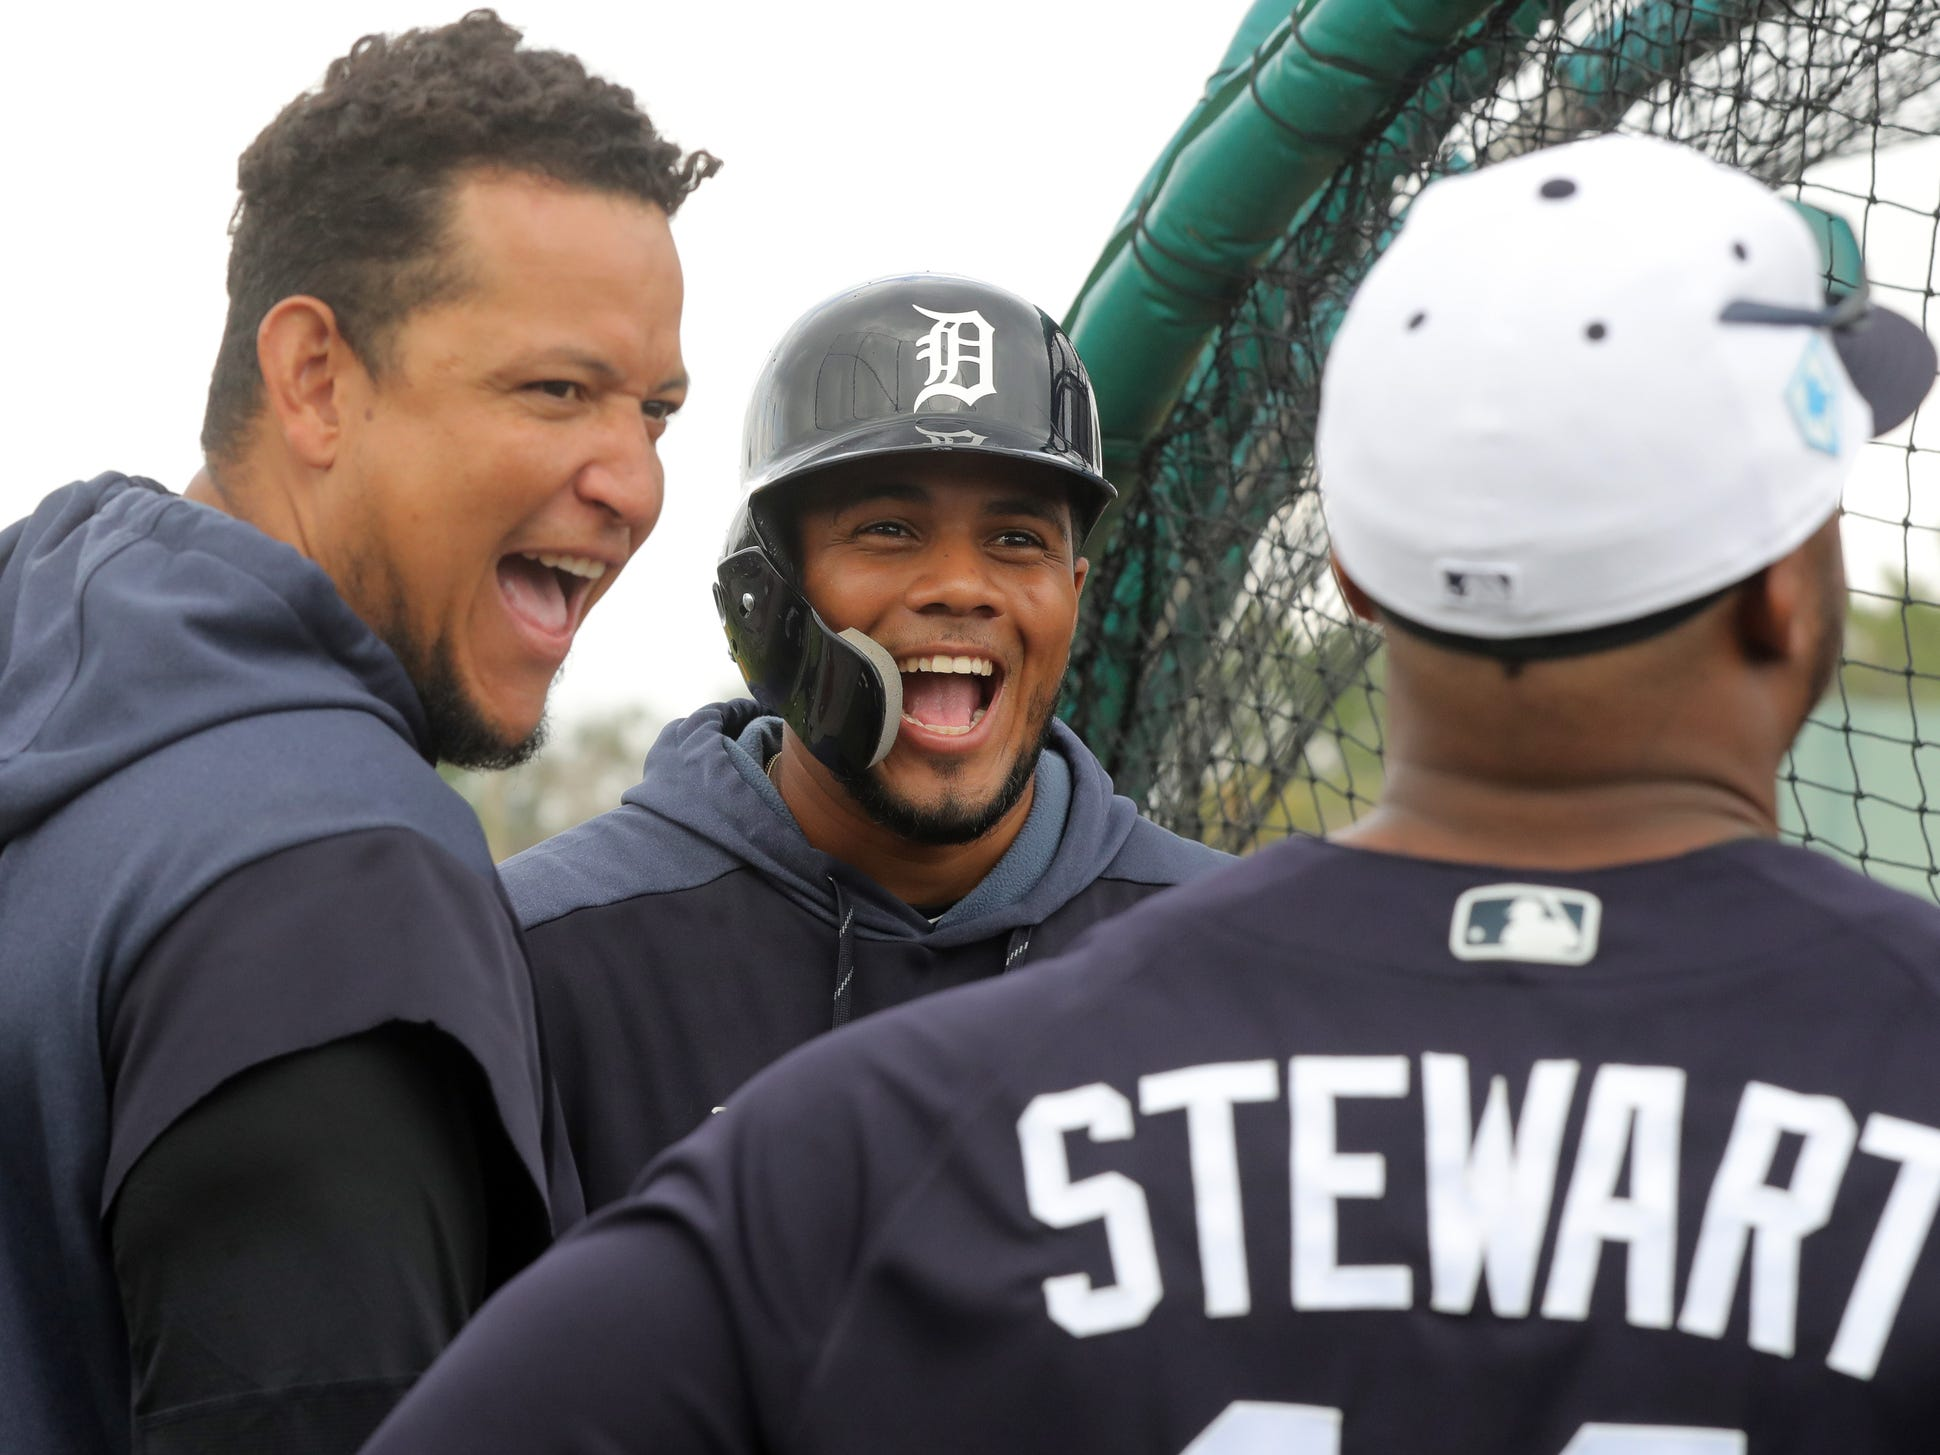 Tigers infielders Miguel Cabrera, left, and Jeimer Candelario joke with outfielder Christin Stewart during the first full team spring training practice on Monday, Feb. 18, 2019, at Joker Marchant Stadium in Lakeland, Florida.